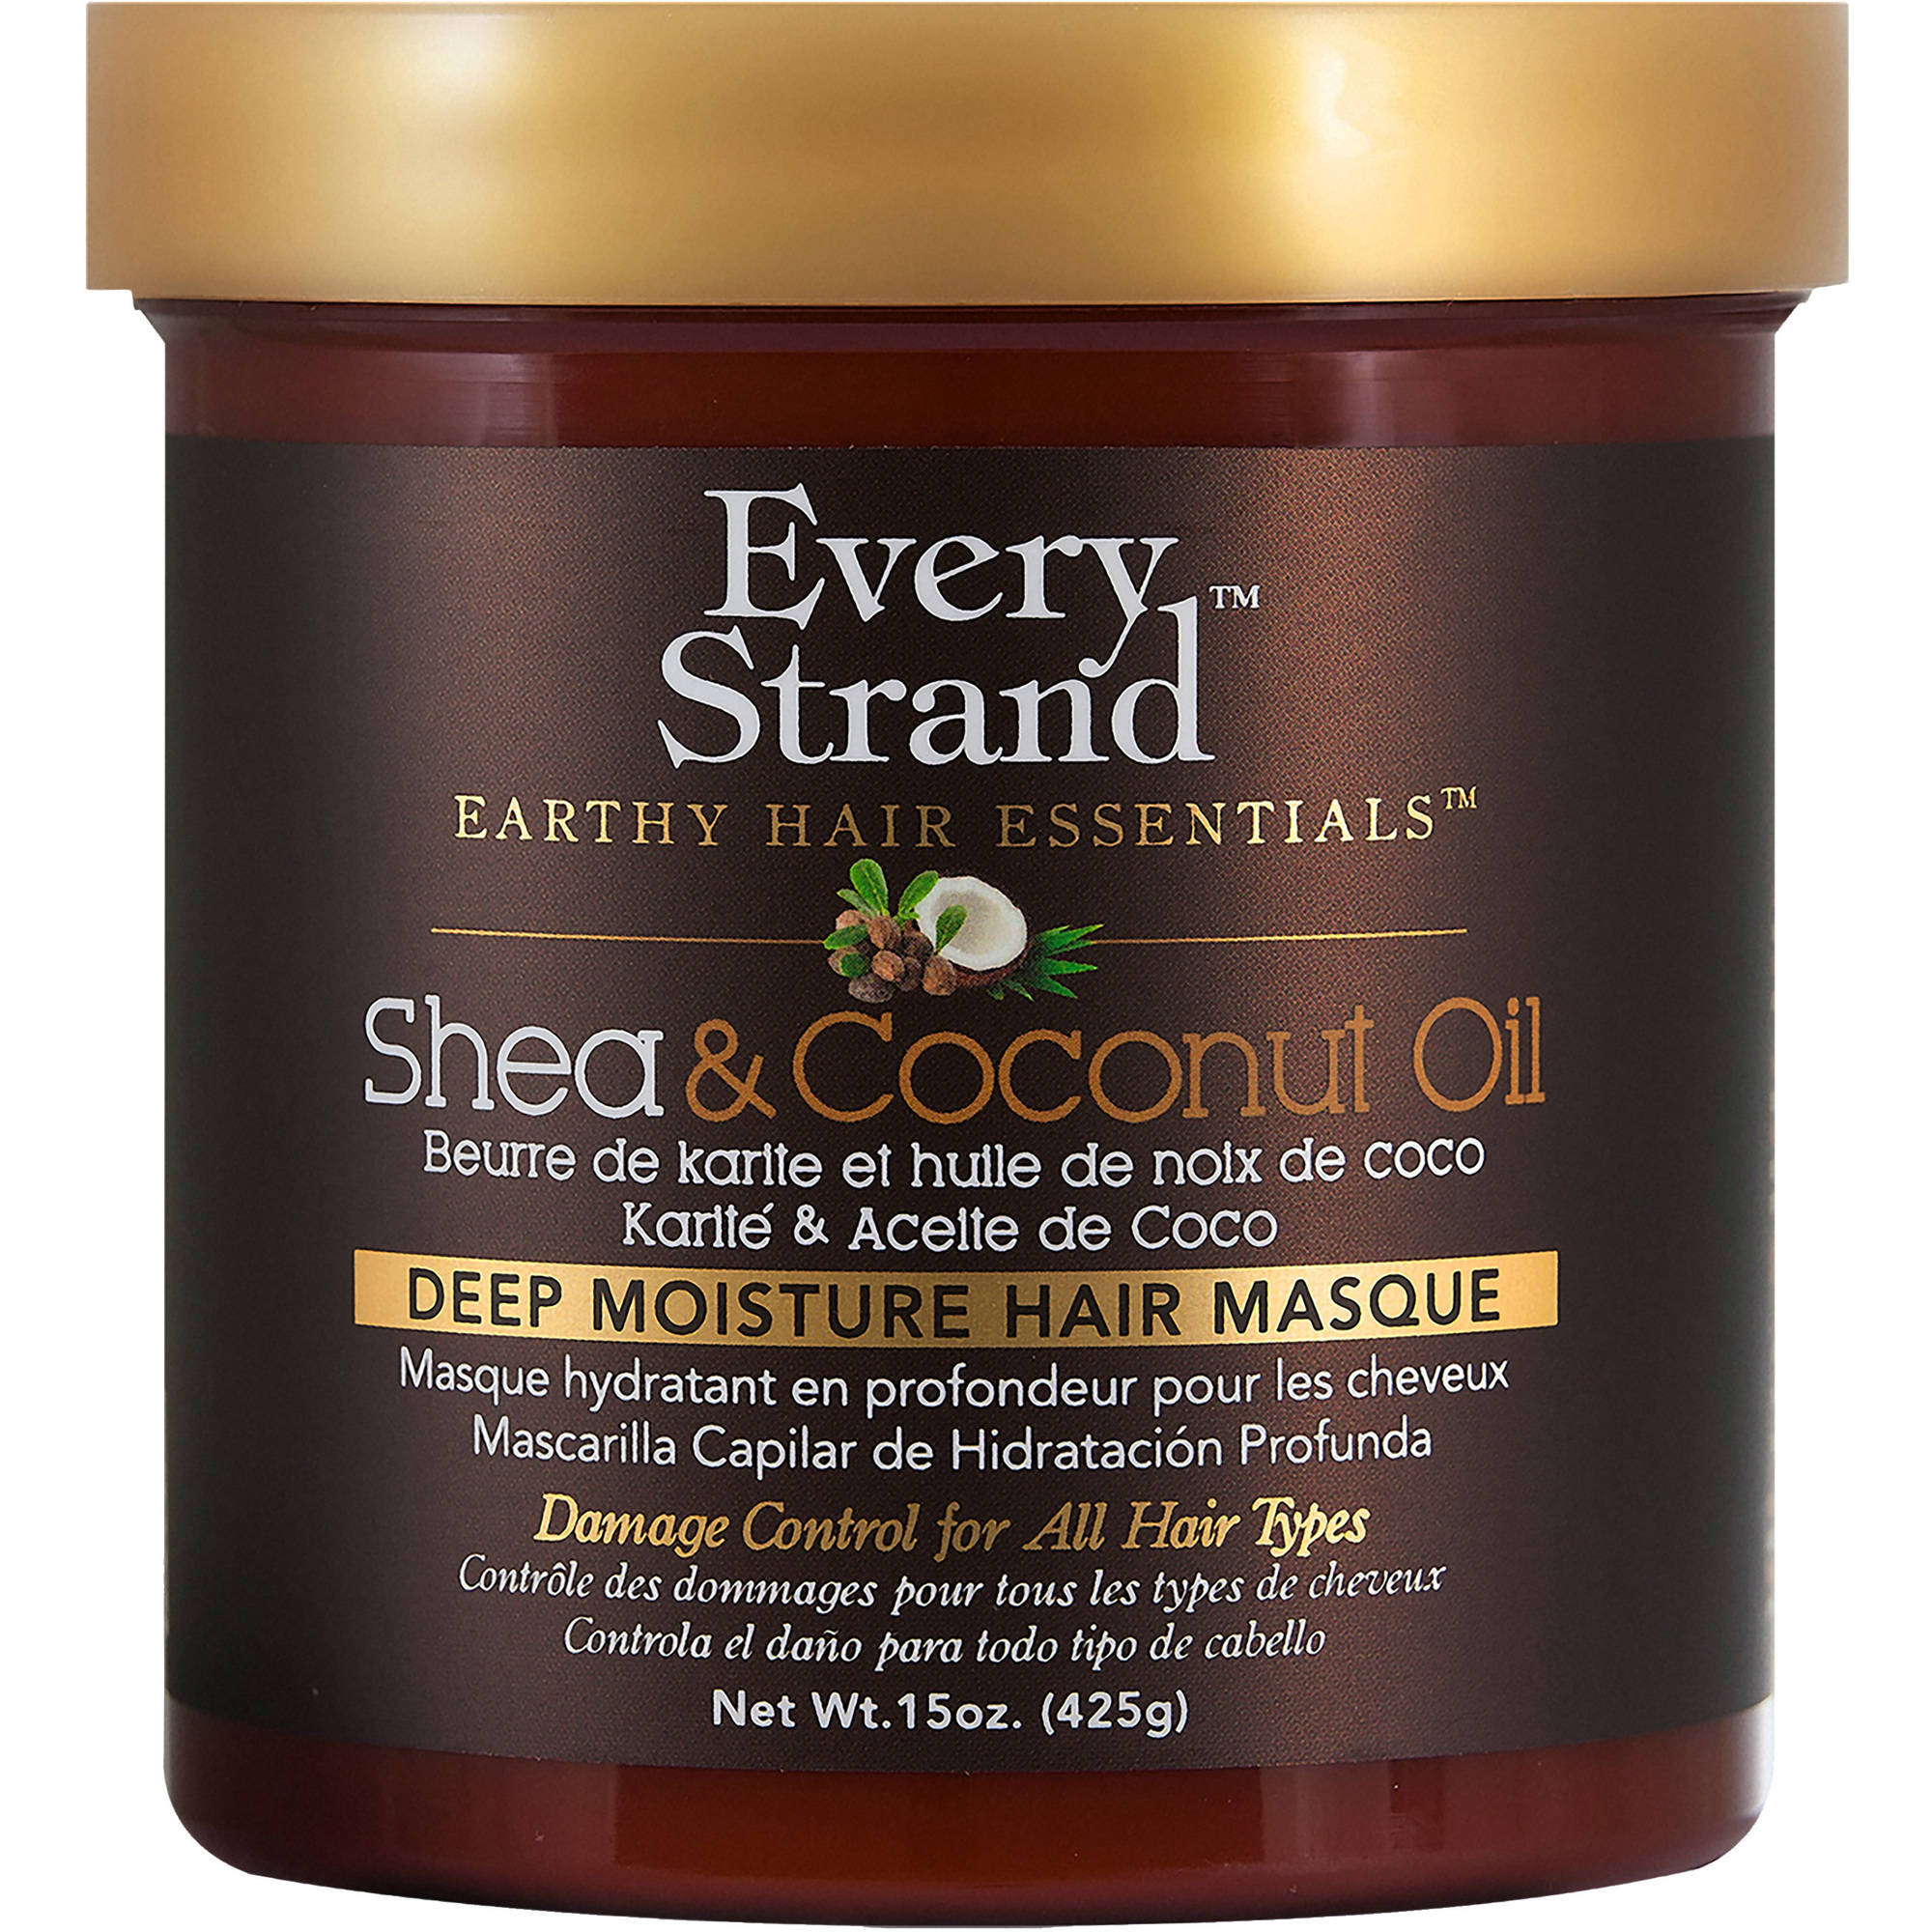 Every Strand Shea & Coconut Oil Deep Moisture Hair Masque, 15 oz